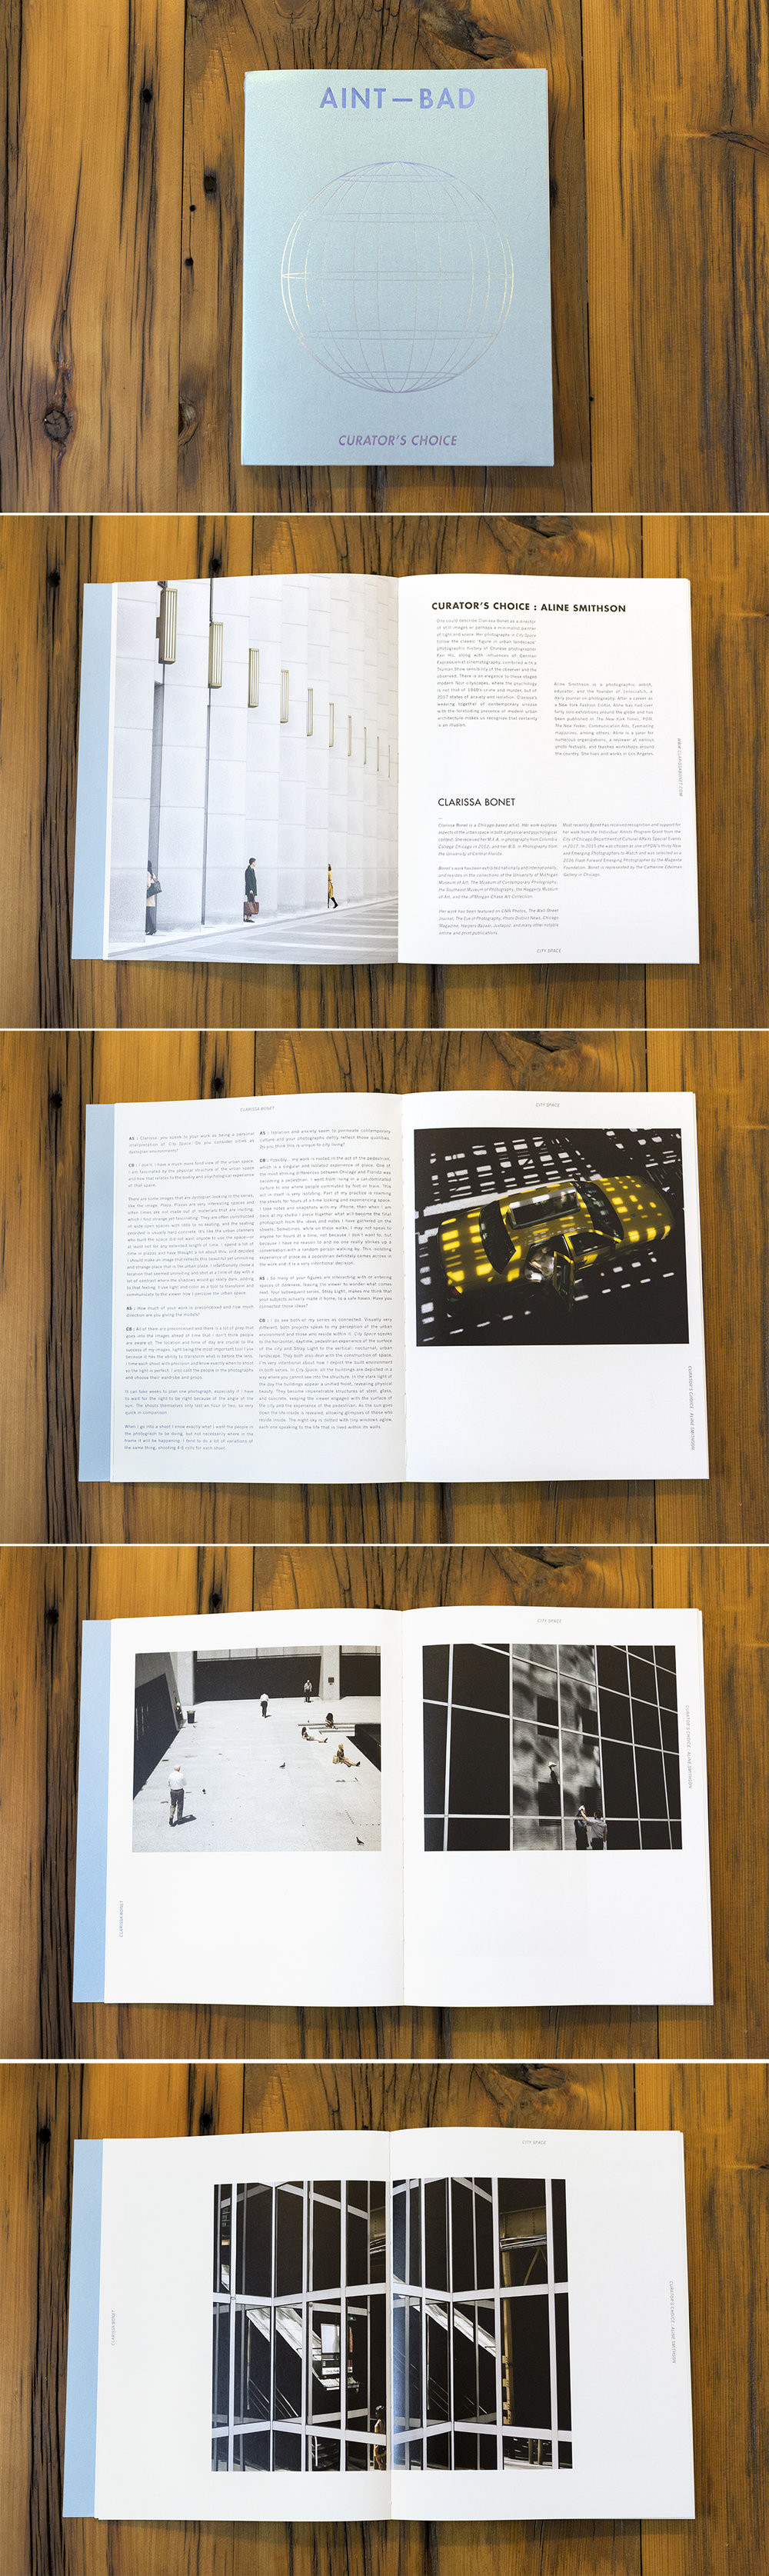 hardwood floors magazine digital issue of news clarissa bonet for my city space work was featured in issue no 12 of aint bad magazine